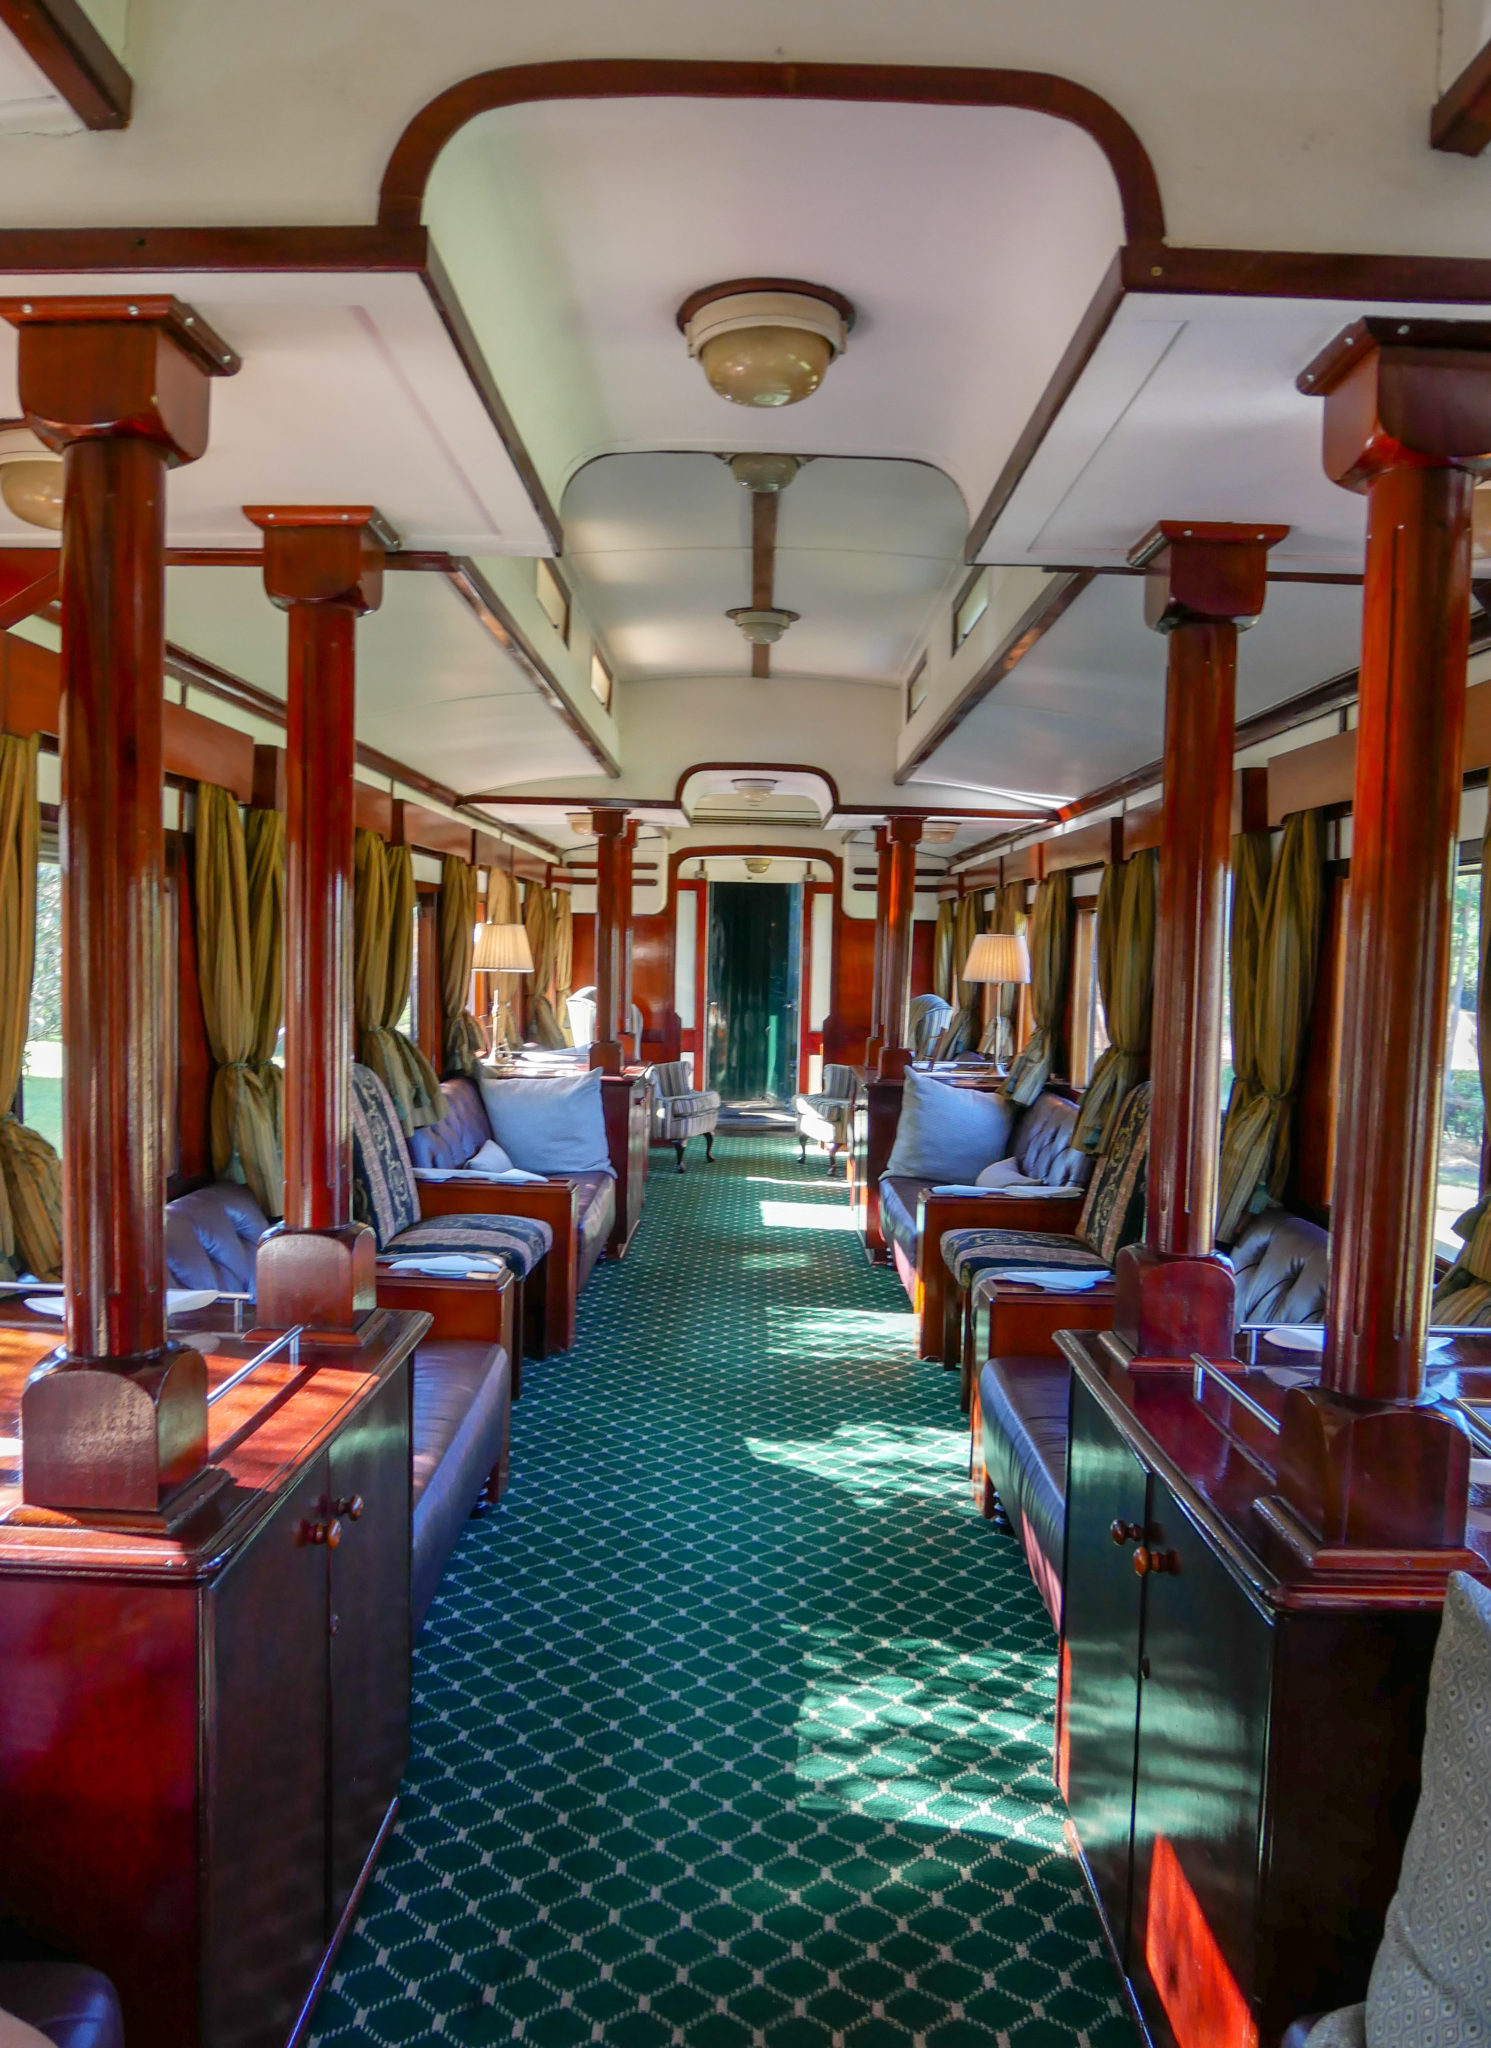 Inside the green carpeted Lounge Car of the Royal Livingstone Express train